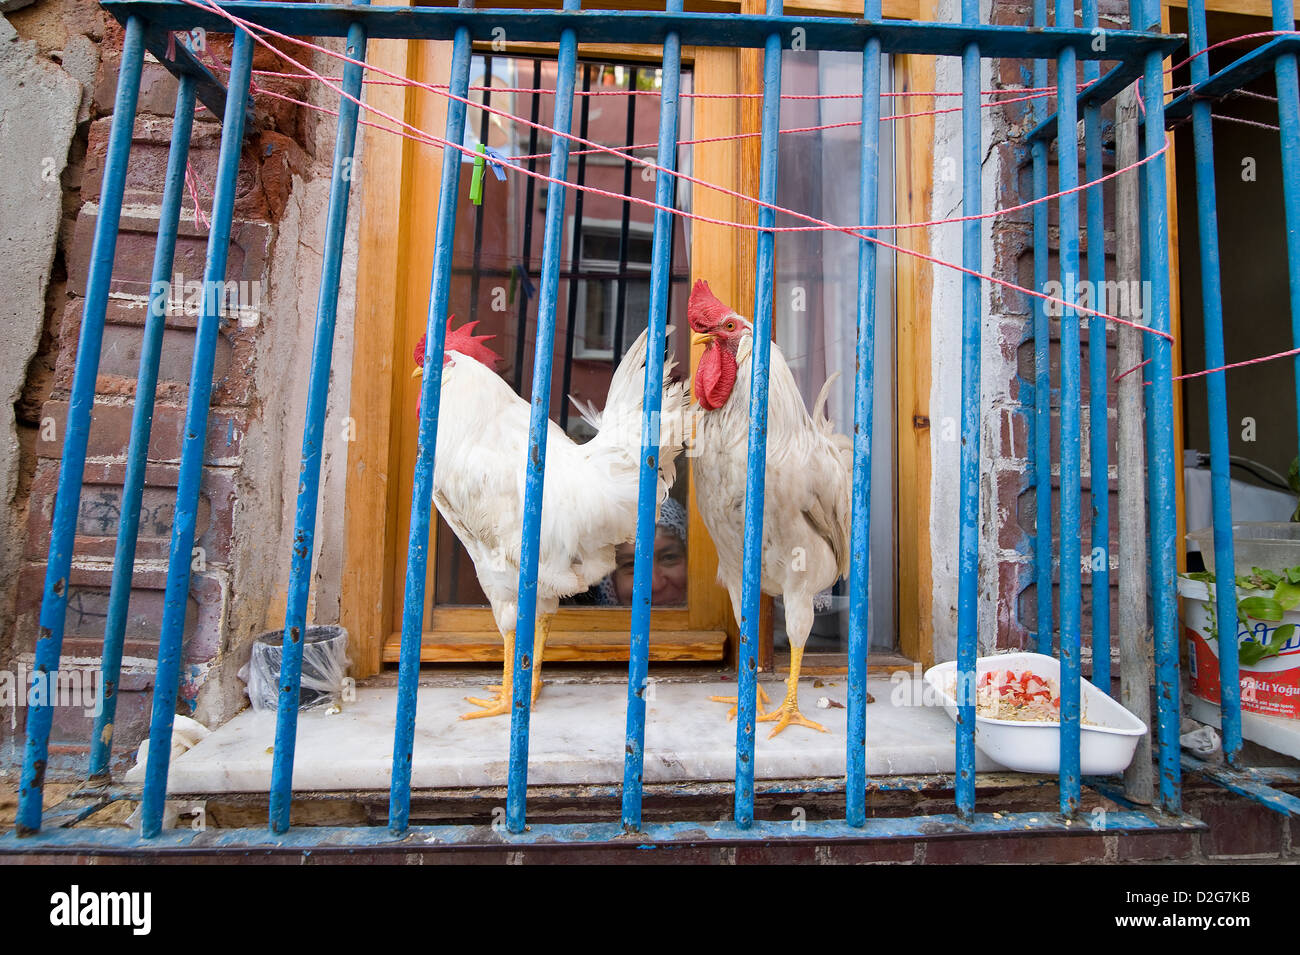 Chicken In Window Stock Photos & Chicken In Window Stock Images - Alamy